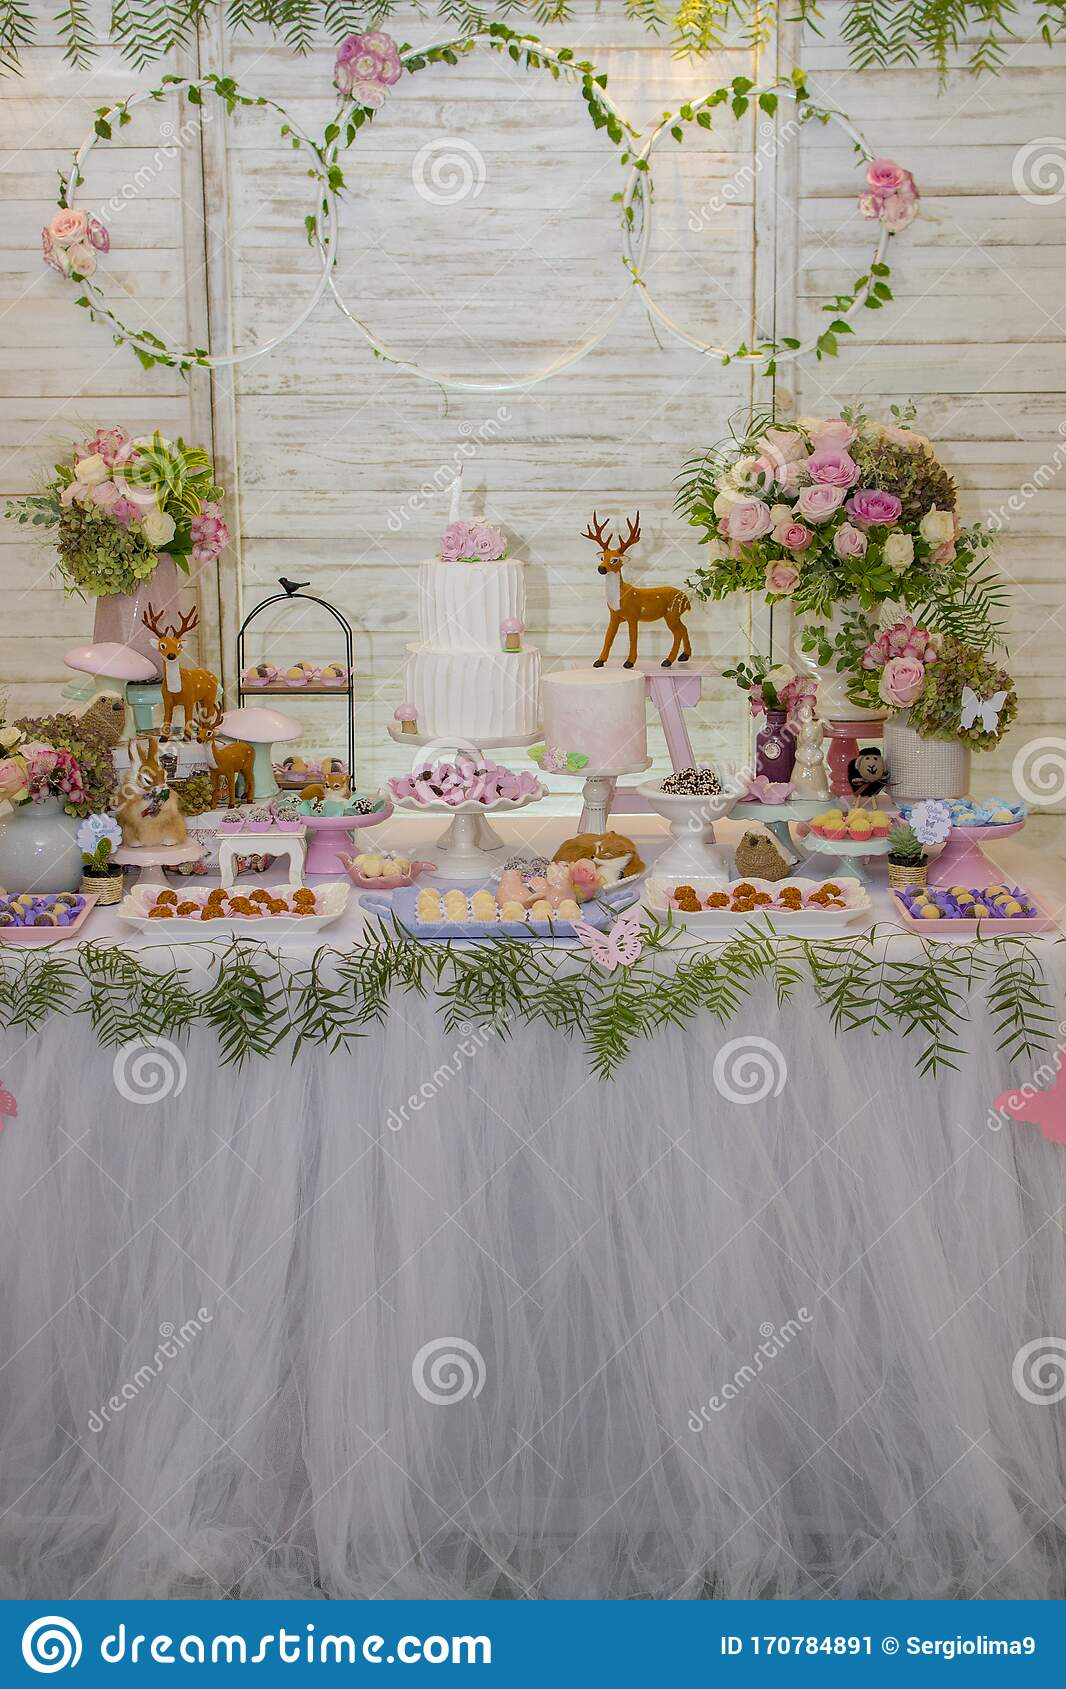 Sensational Luxurious Table Of Sweets And Birthday Cake Stock Image Image Of Funny Birthday Cards Online Elaedamsfinfo